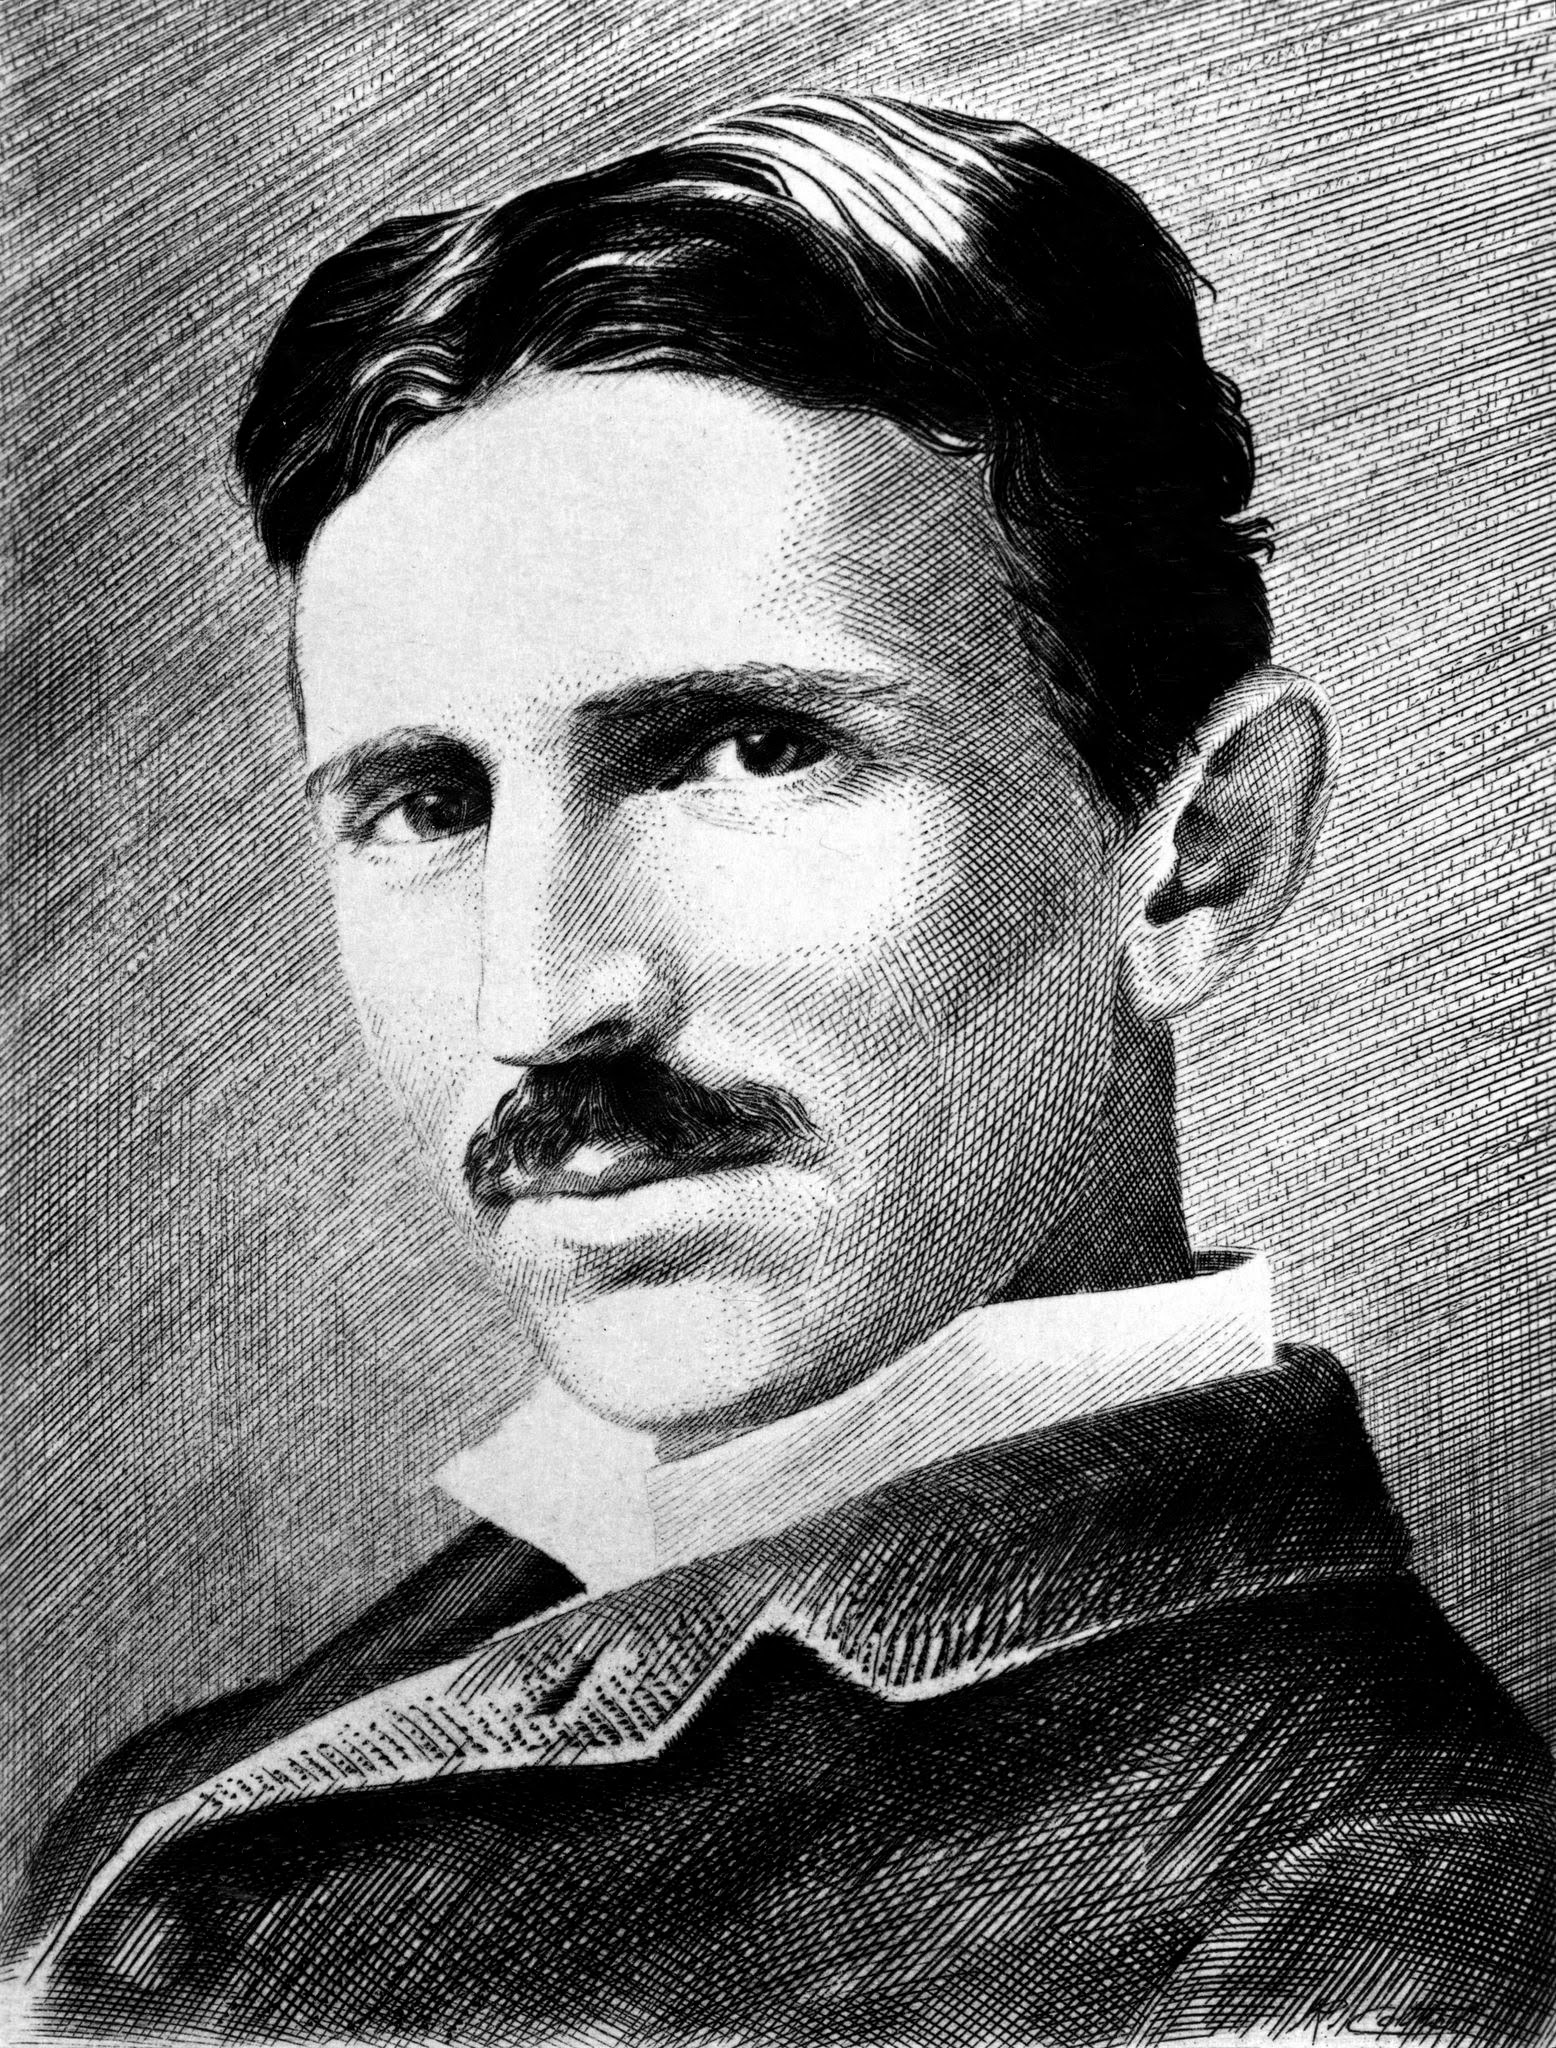 Real-Life Mad Scientists With Peculiar Habits and Mental Disorders - Nikola Tesla